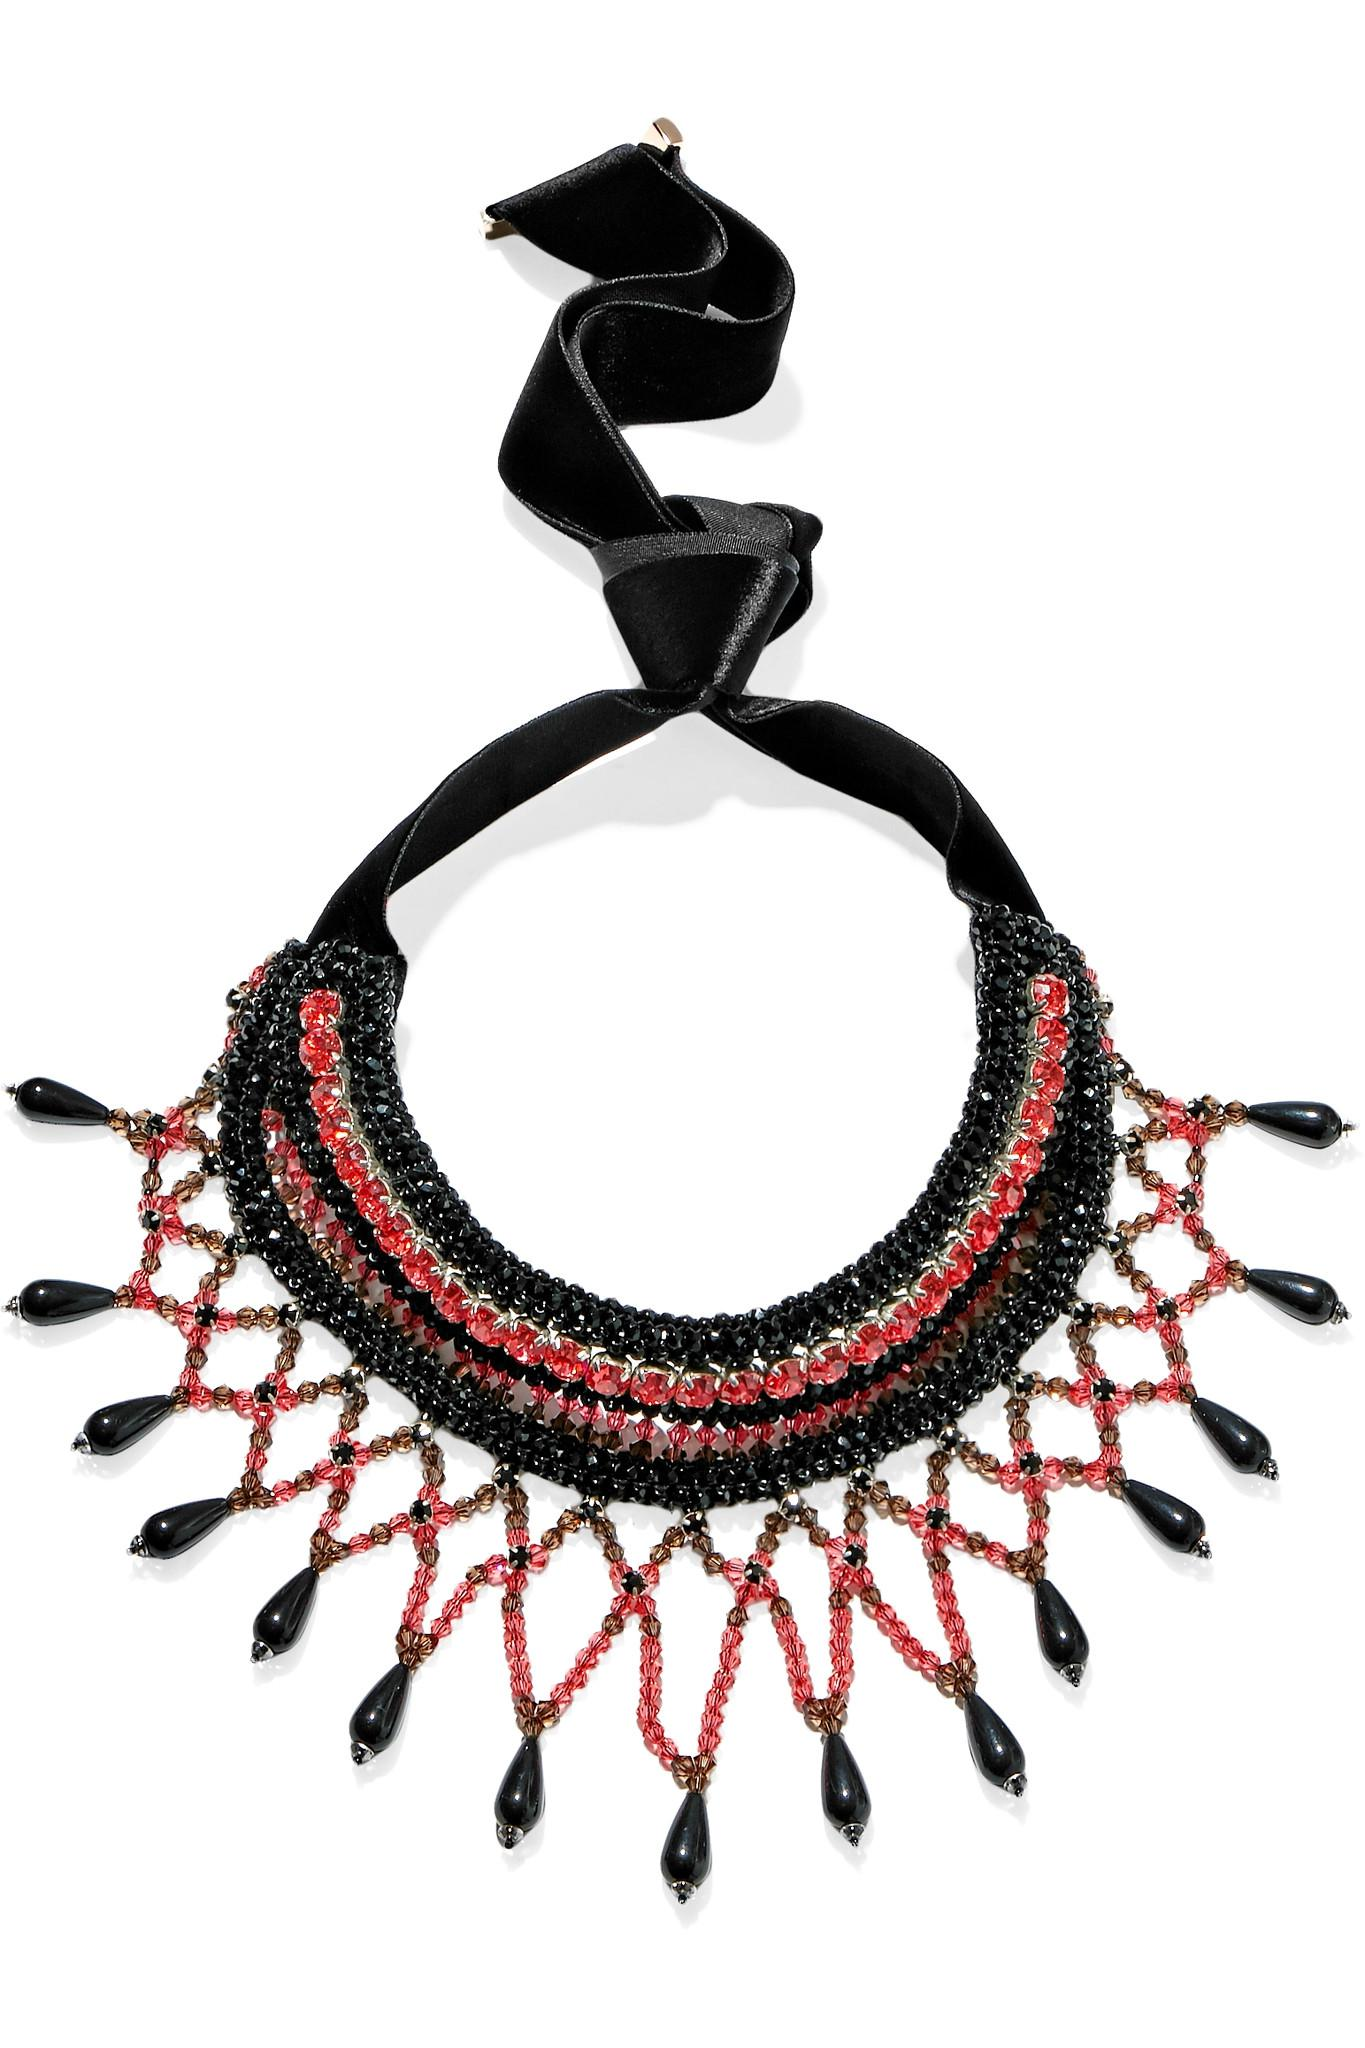 Crystal And Bead Necklace - Black Etro k1D1eNX